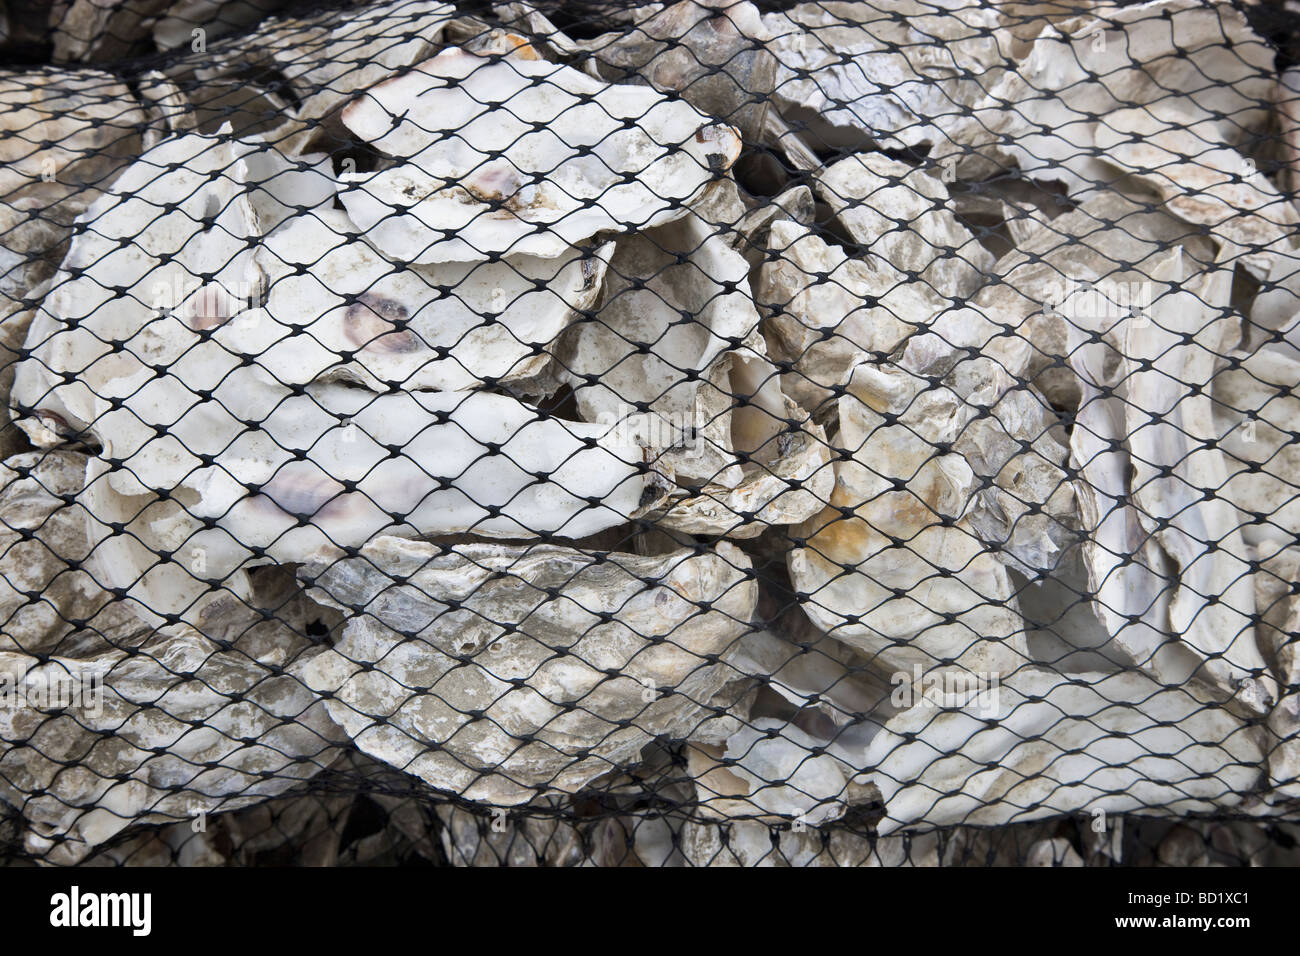 Oyster Shells in bags prepared for reseeding beds. - Stock Image